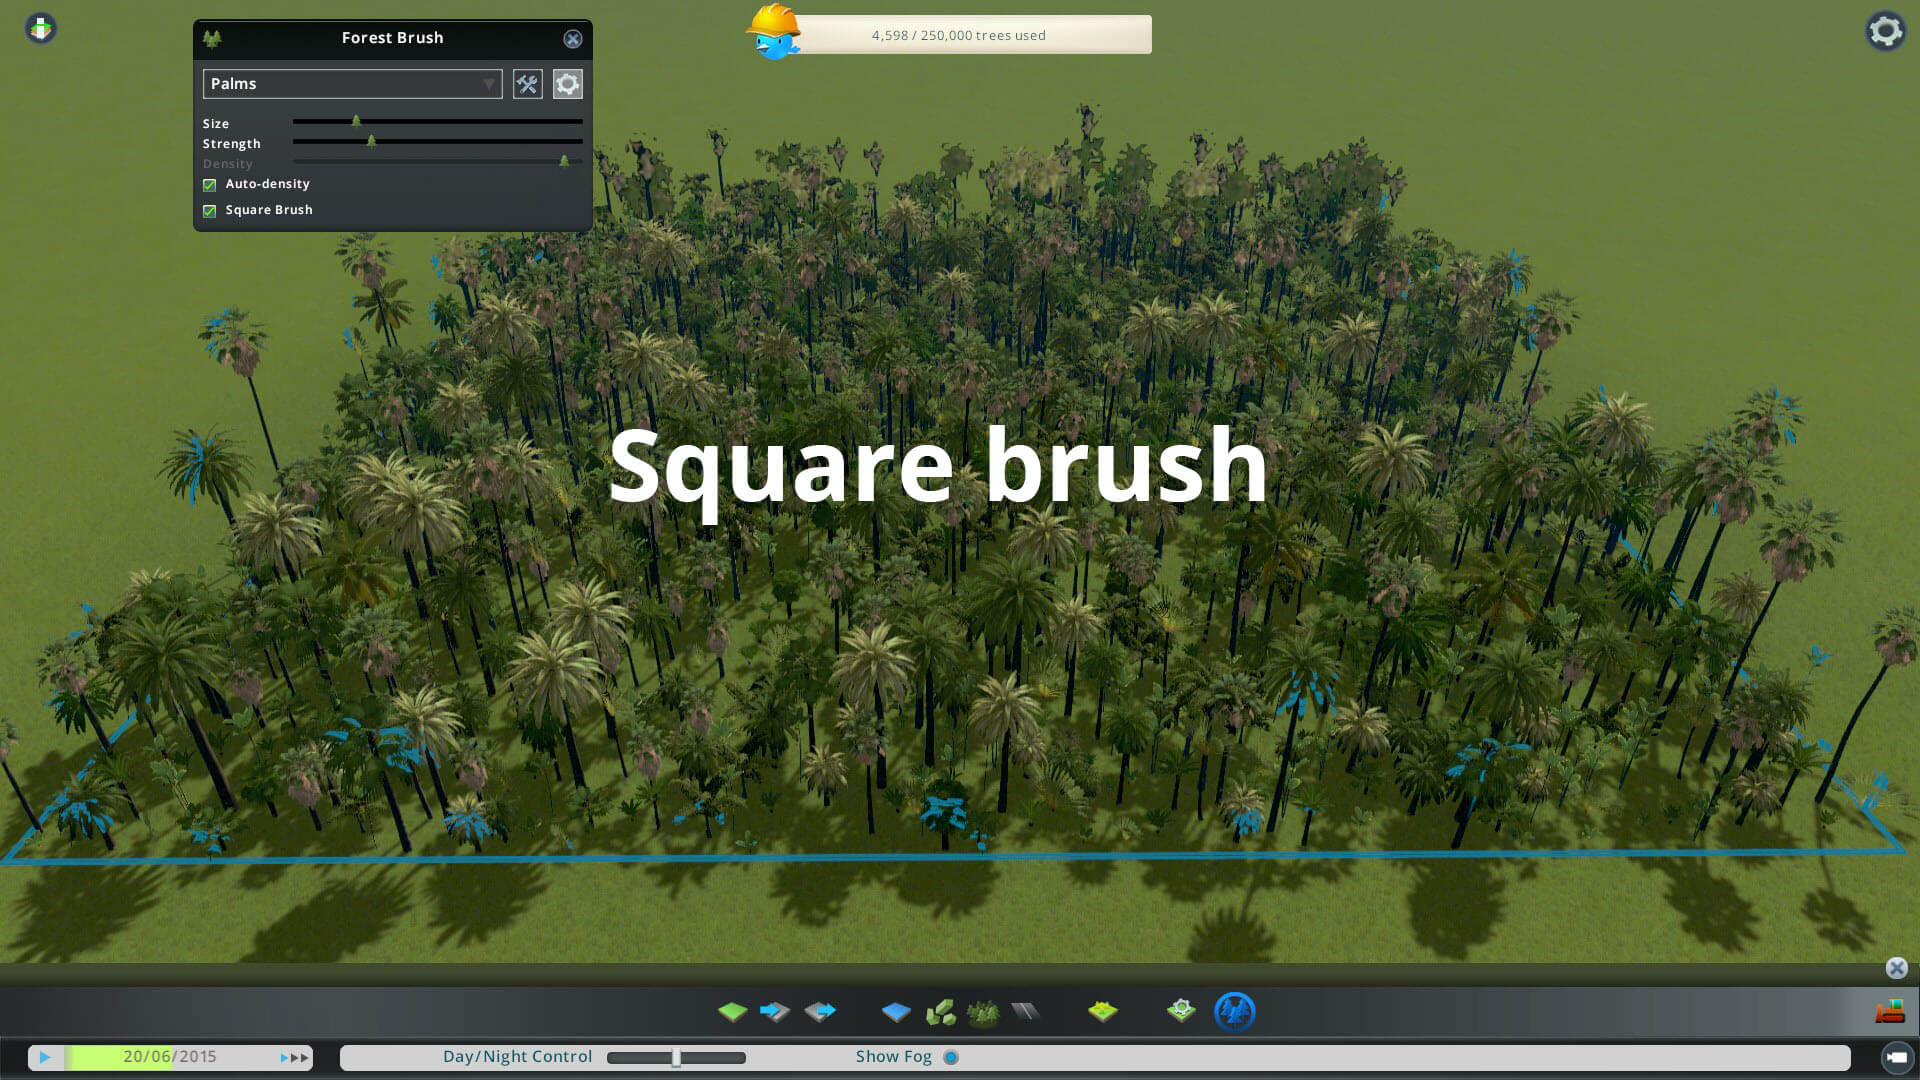 Cities: Skylines - Forest Brush